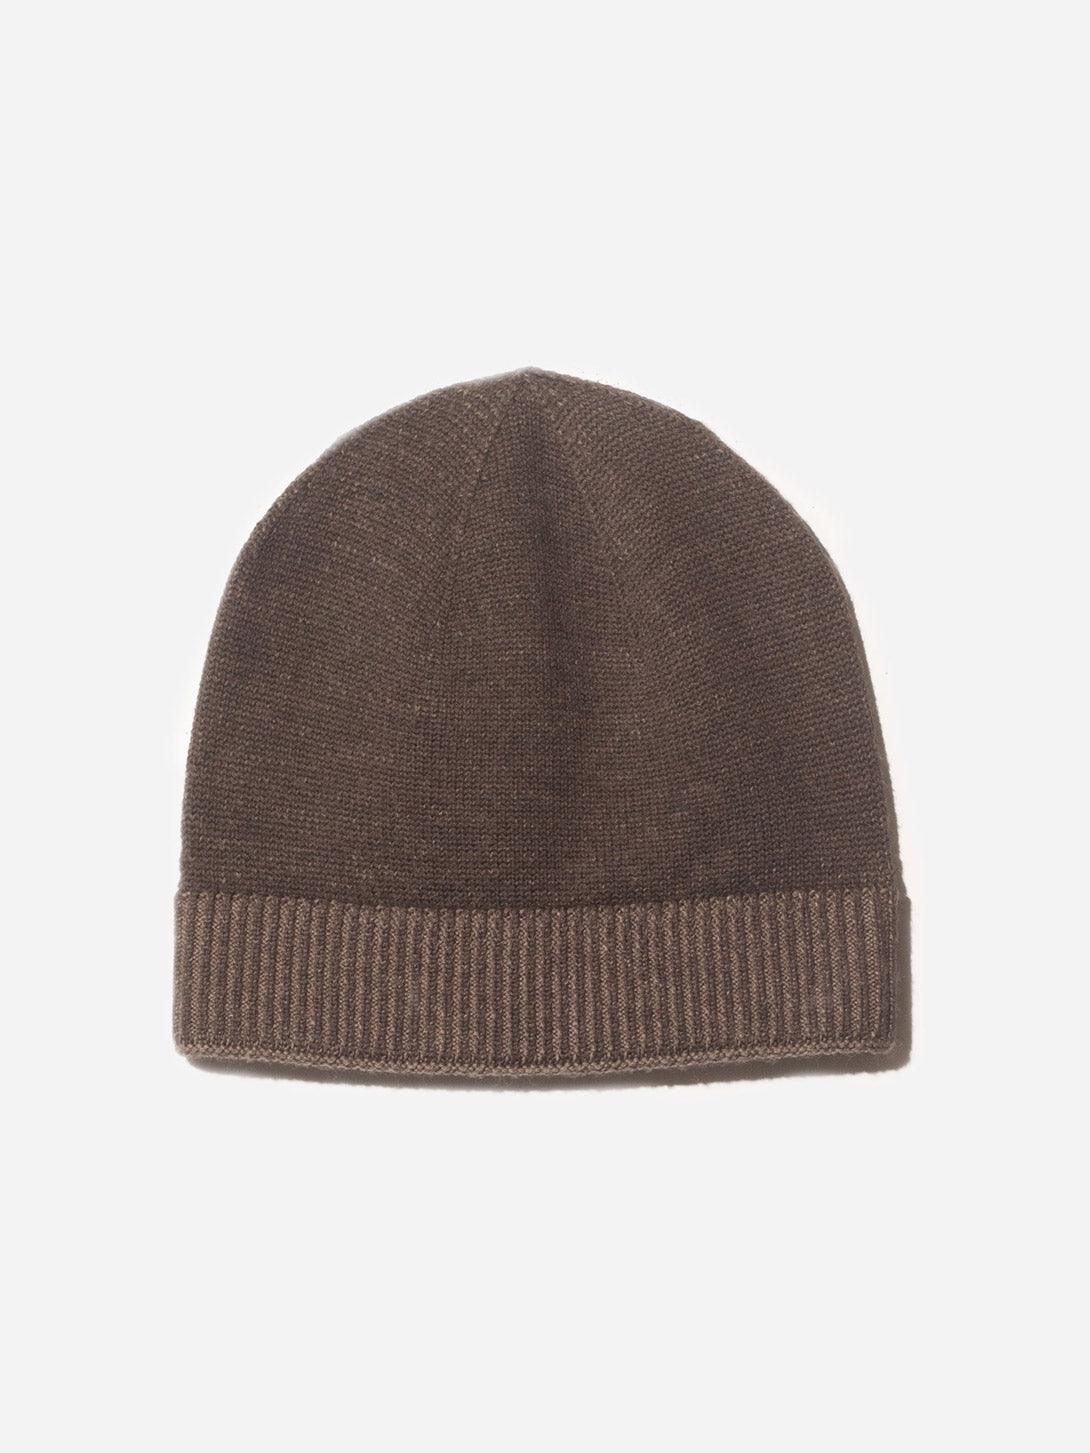 SUMMIT KNIT CAP BROWN